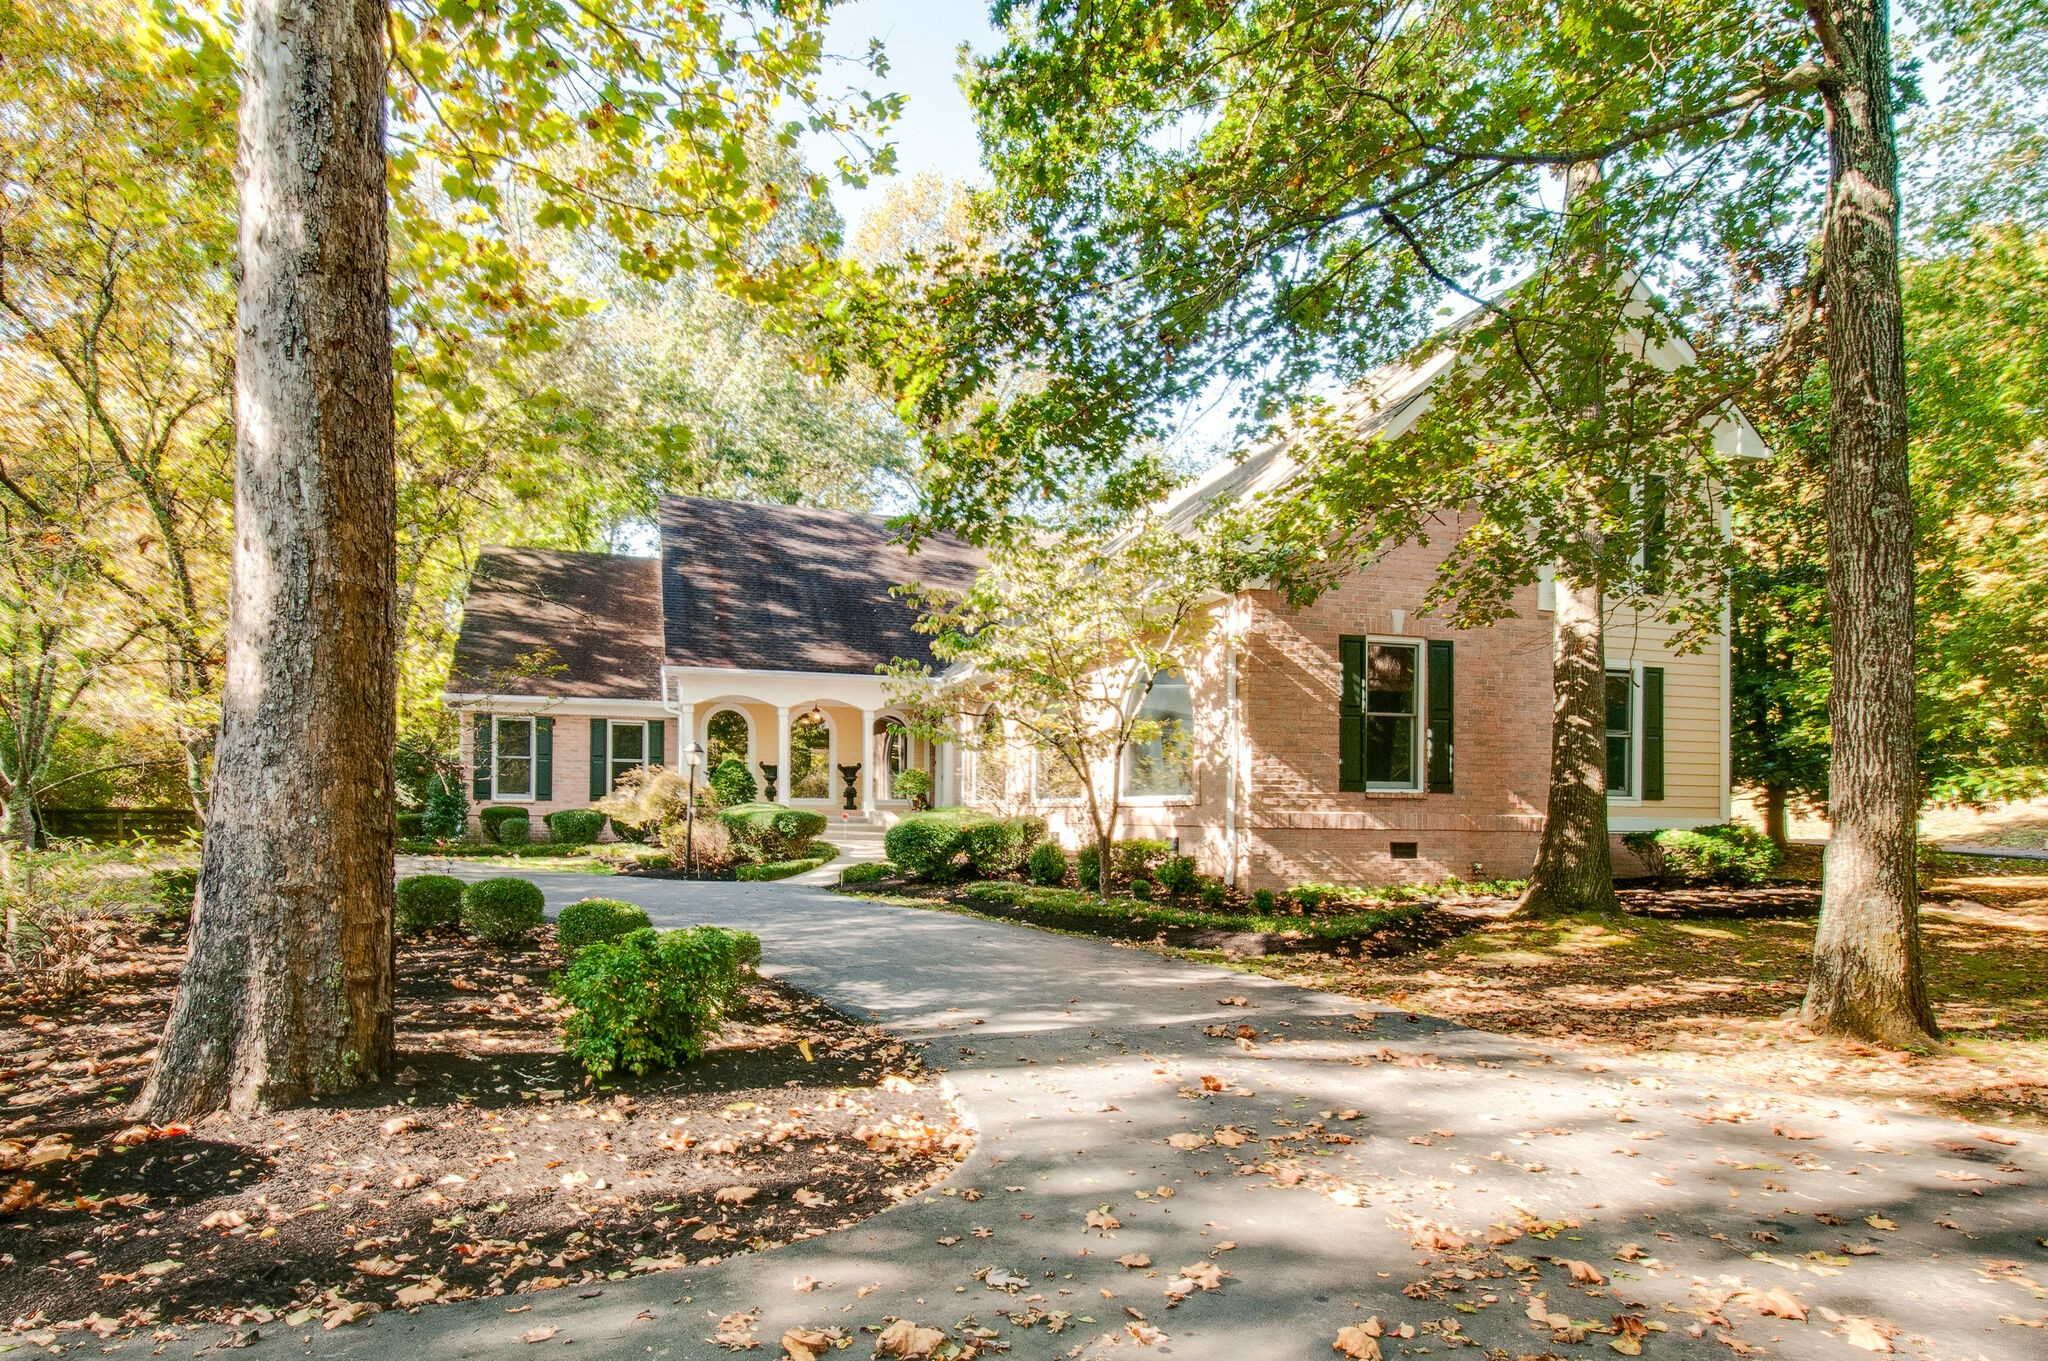 Convenient yet isolated, simply tucked away on a quiet street in the middle of Brentwood. Almost 1.5 acres, fully fenced & surrounded by a babbling brook creating the most serene setting. Floor to ceiling windows, custom built for a renowned music producer back in the day. Tons of storage, 4-car garage, hardwoods on main, beautiful sunroom with windows galore, open kitchen with ample cabinetry & large island for entertaining!